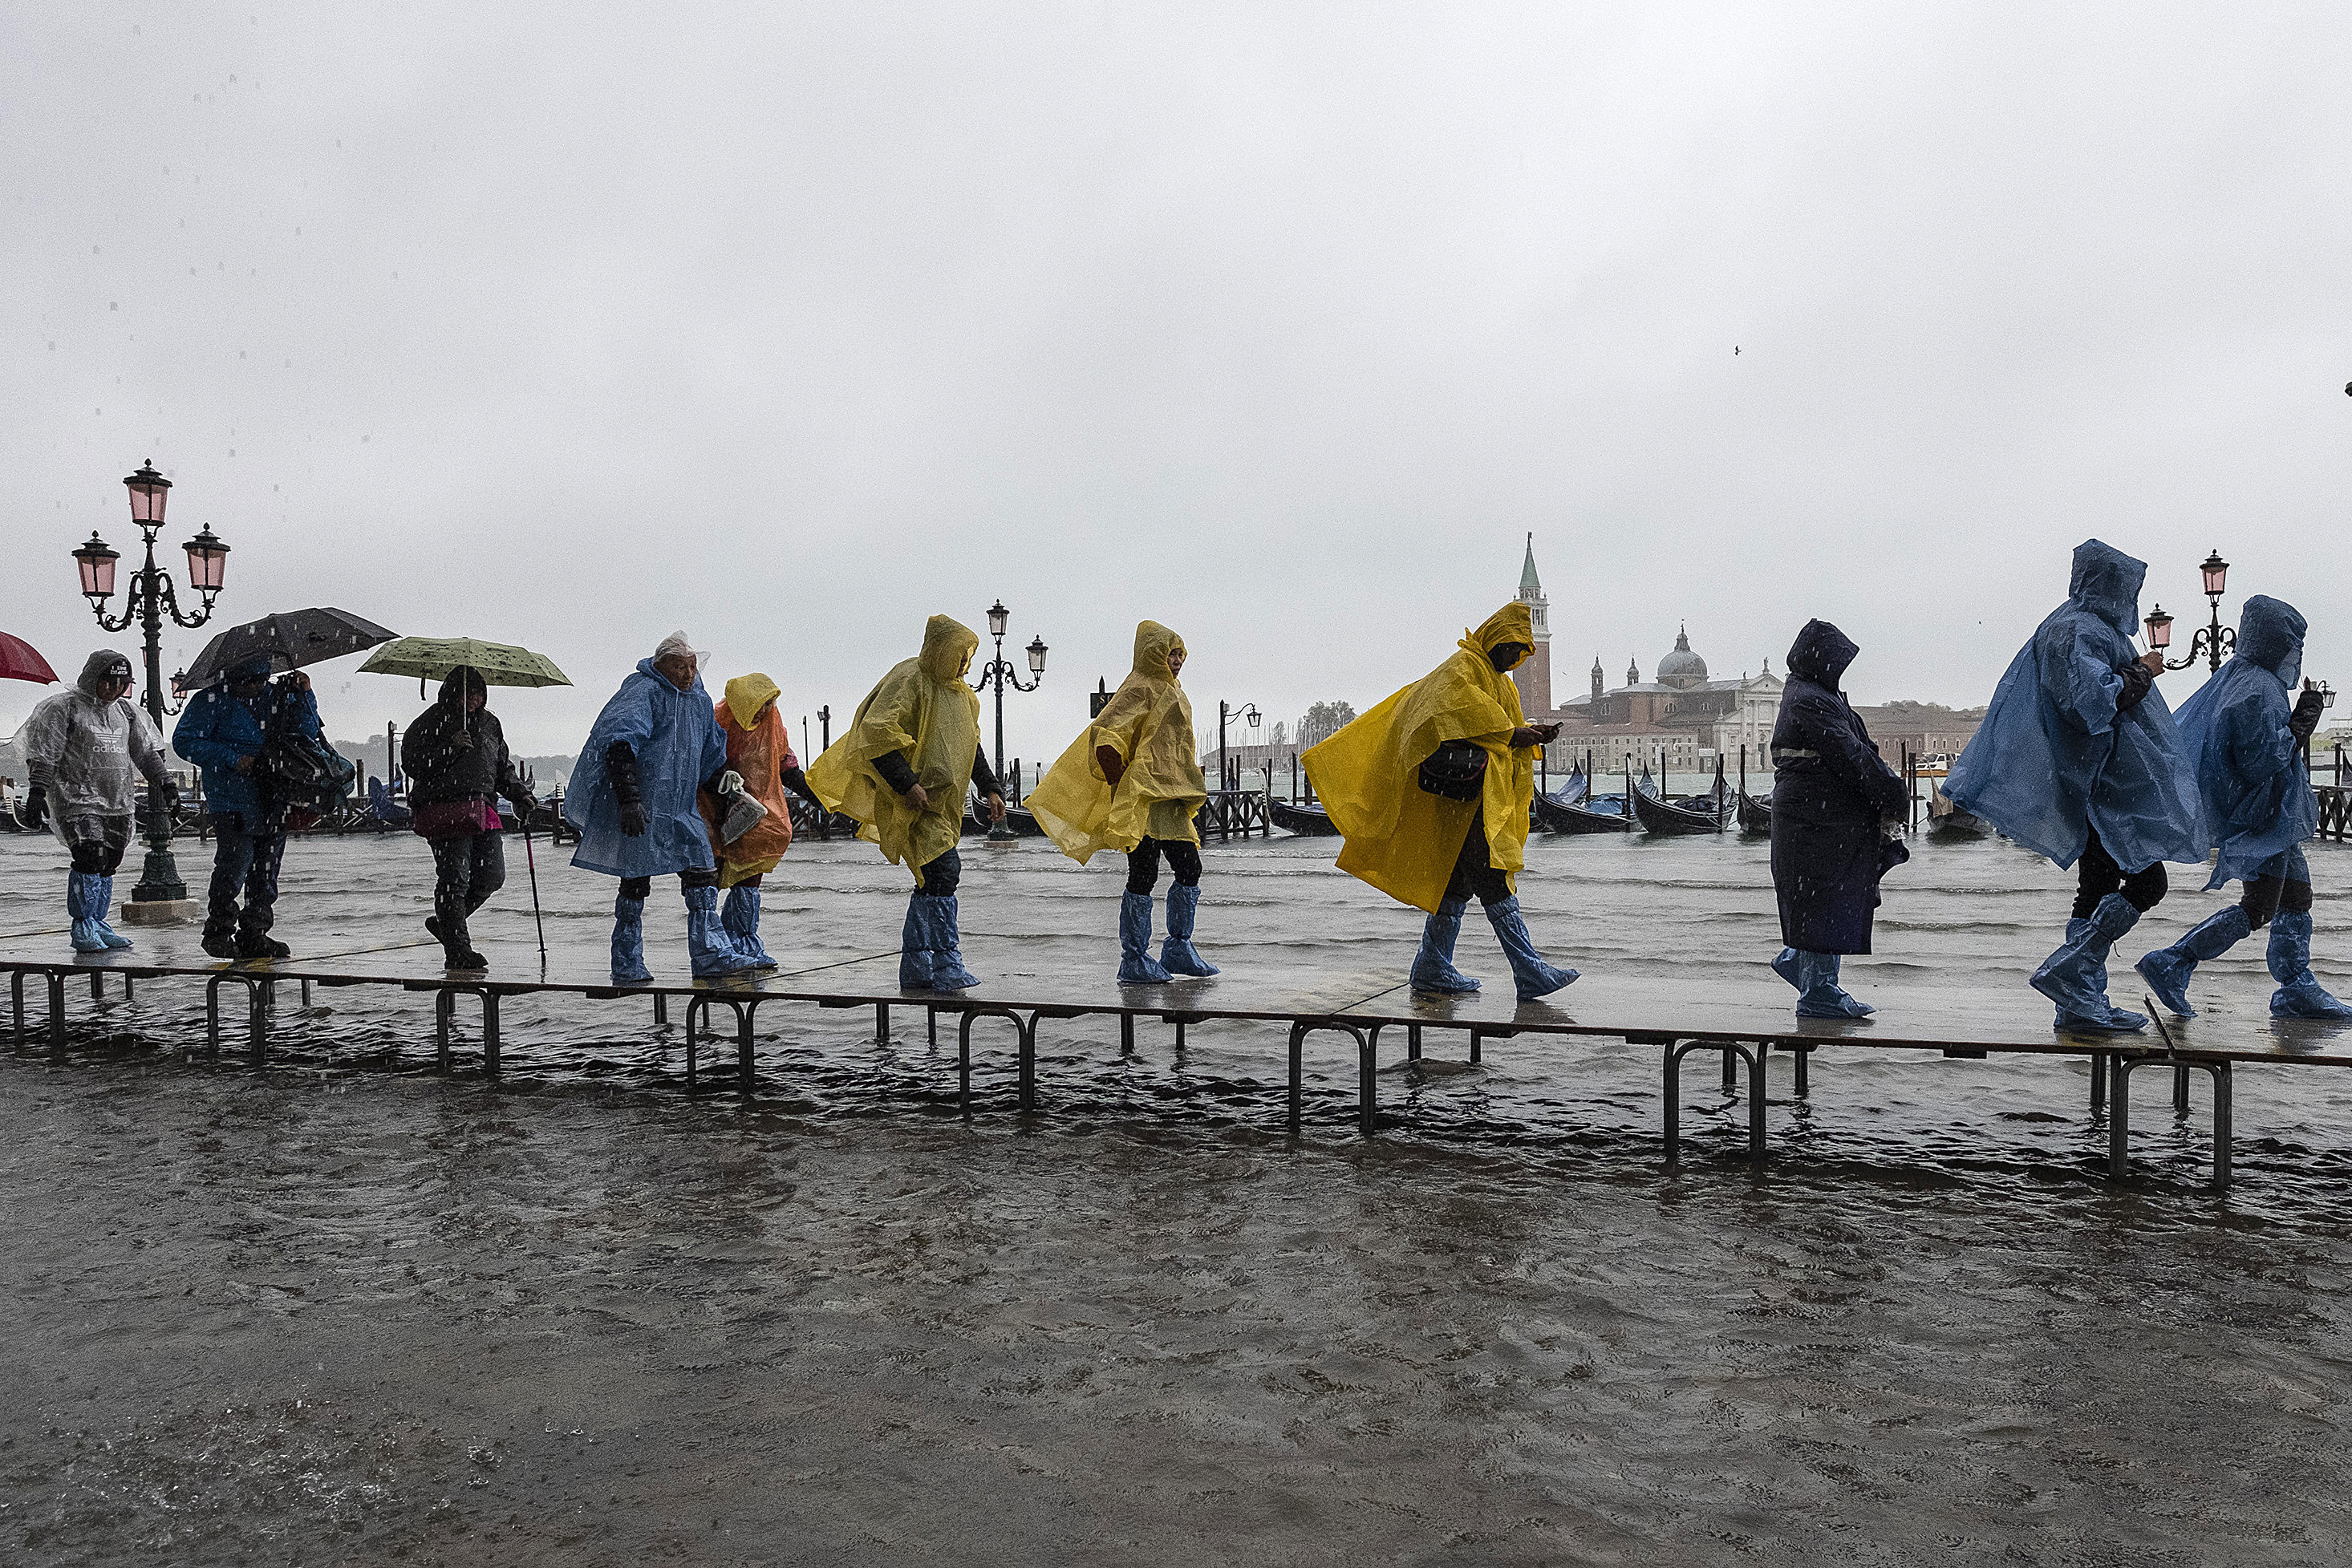 Tourists walk in high water in Piazza San Marco on Nov. 12, 2019 in Venice, Italy.